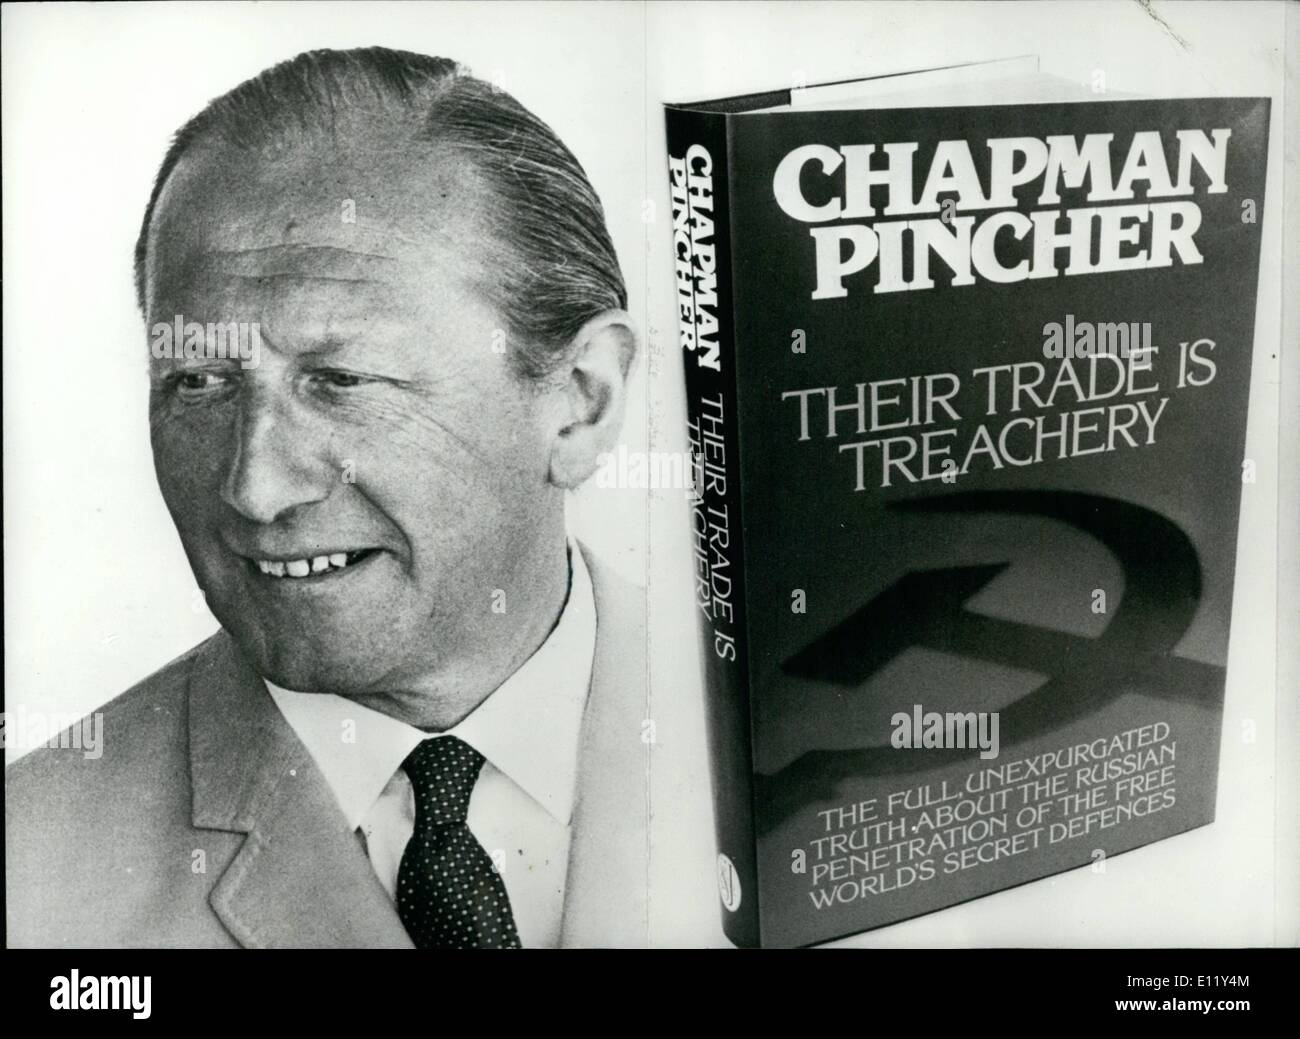 Mar. 03, 1981 - Pincher Names Driberg As Double Agent: Tom Driberg, the left wing Labour M.P. was a double agent working for the KGB and MI5, according to Chapman Pincher in his new book ''Their Trade is Treachery'' published this week. Driberg, who died in 1976, was a member of the Labour National Executive, chairman of the Labour Party and finally a life peer.Photo shows Author Chapman Pincher, a leading expert on espionage, and his controversial new book ''Their Trade is Treachery' - Stock Image